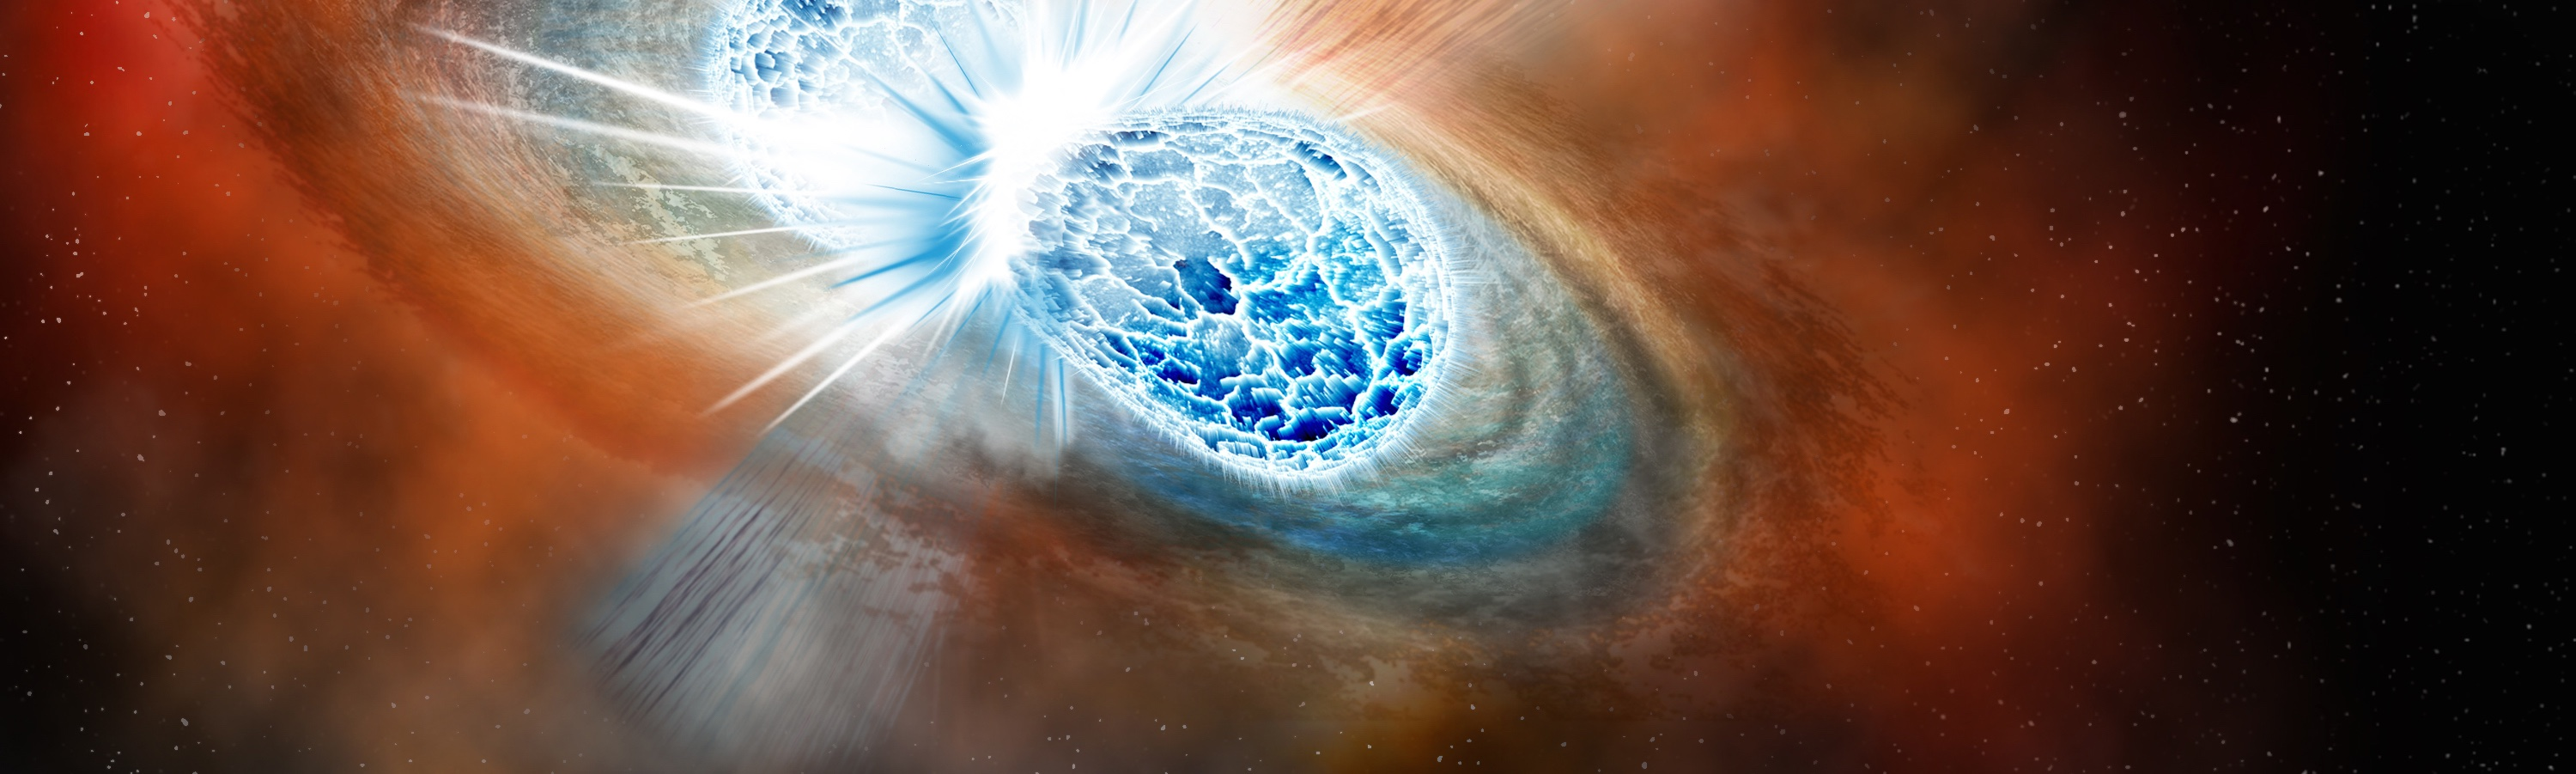 LIGO and Telescopes Spot Spectacular Neutron Star Cataclysm in Record-Breaking Discovery